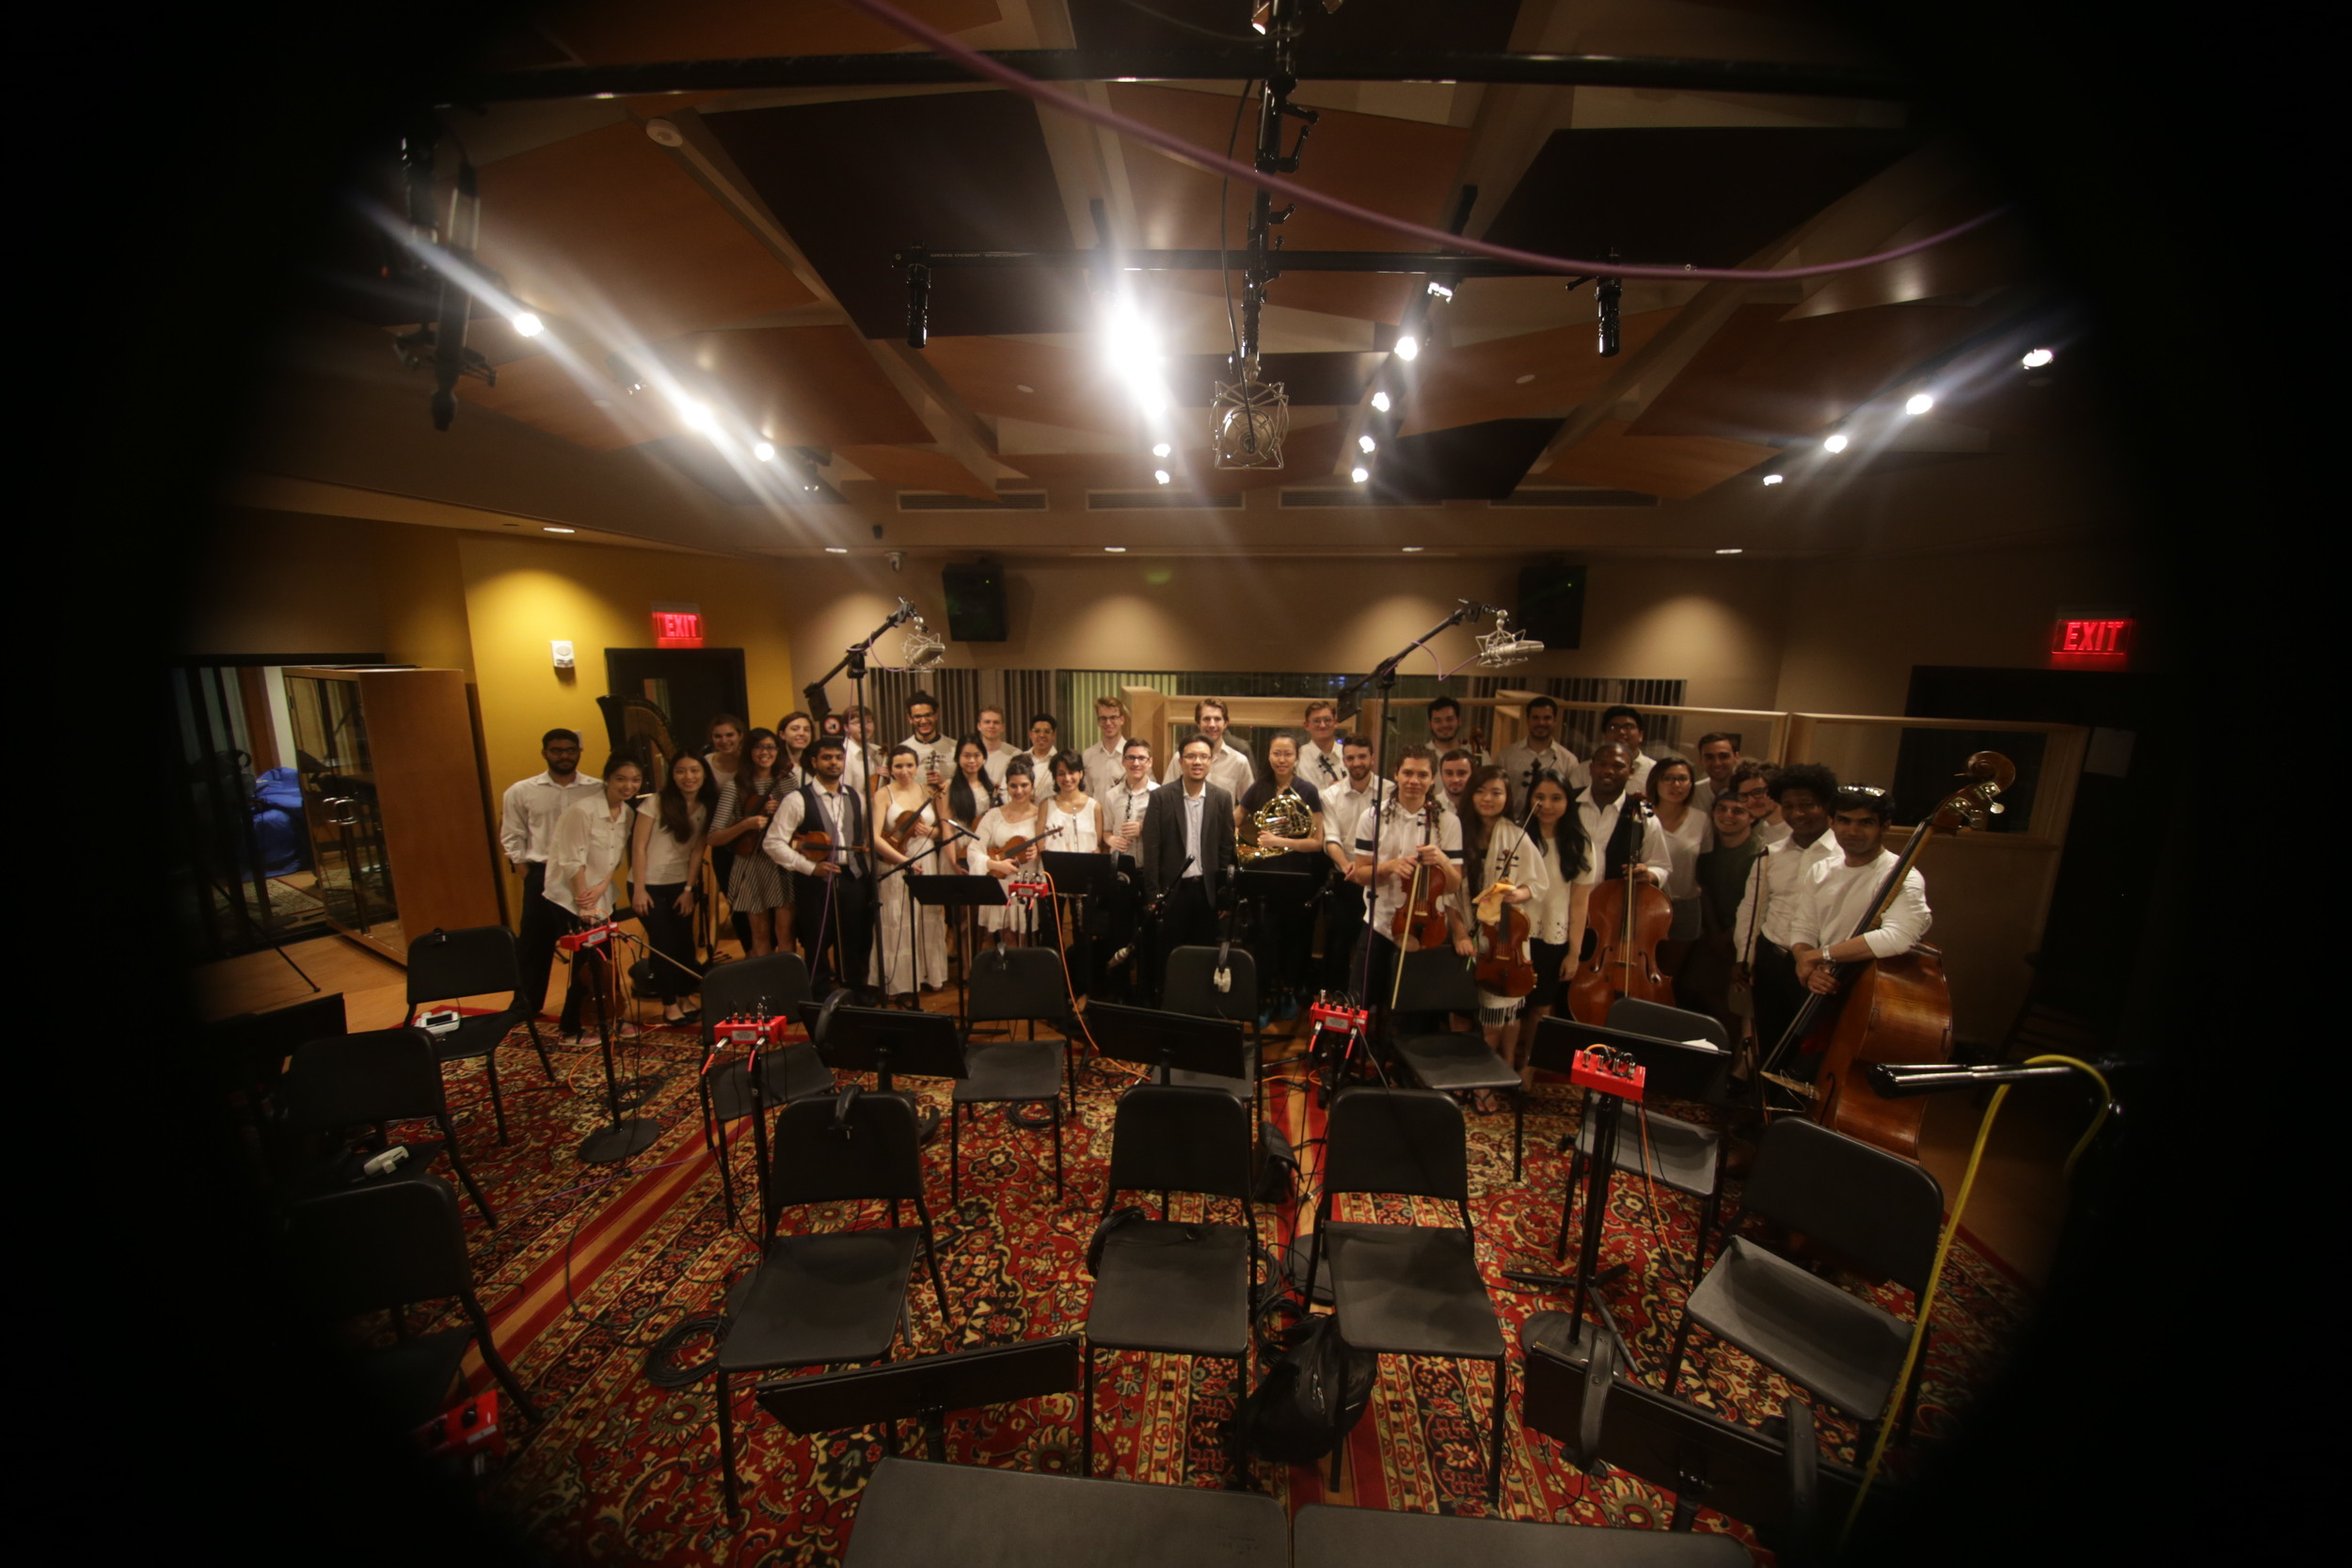 Recorded my composition & arrangement with some of Berklee's finest.